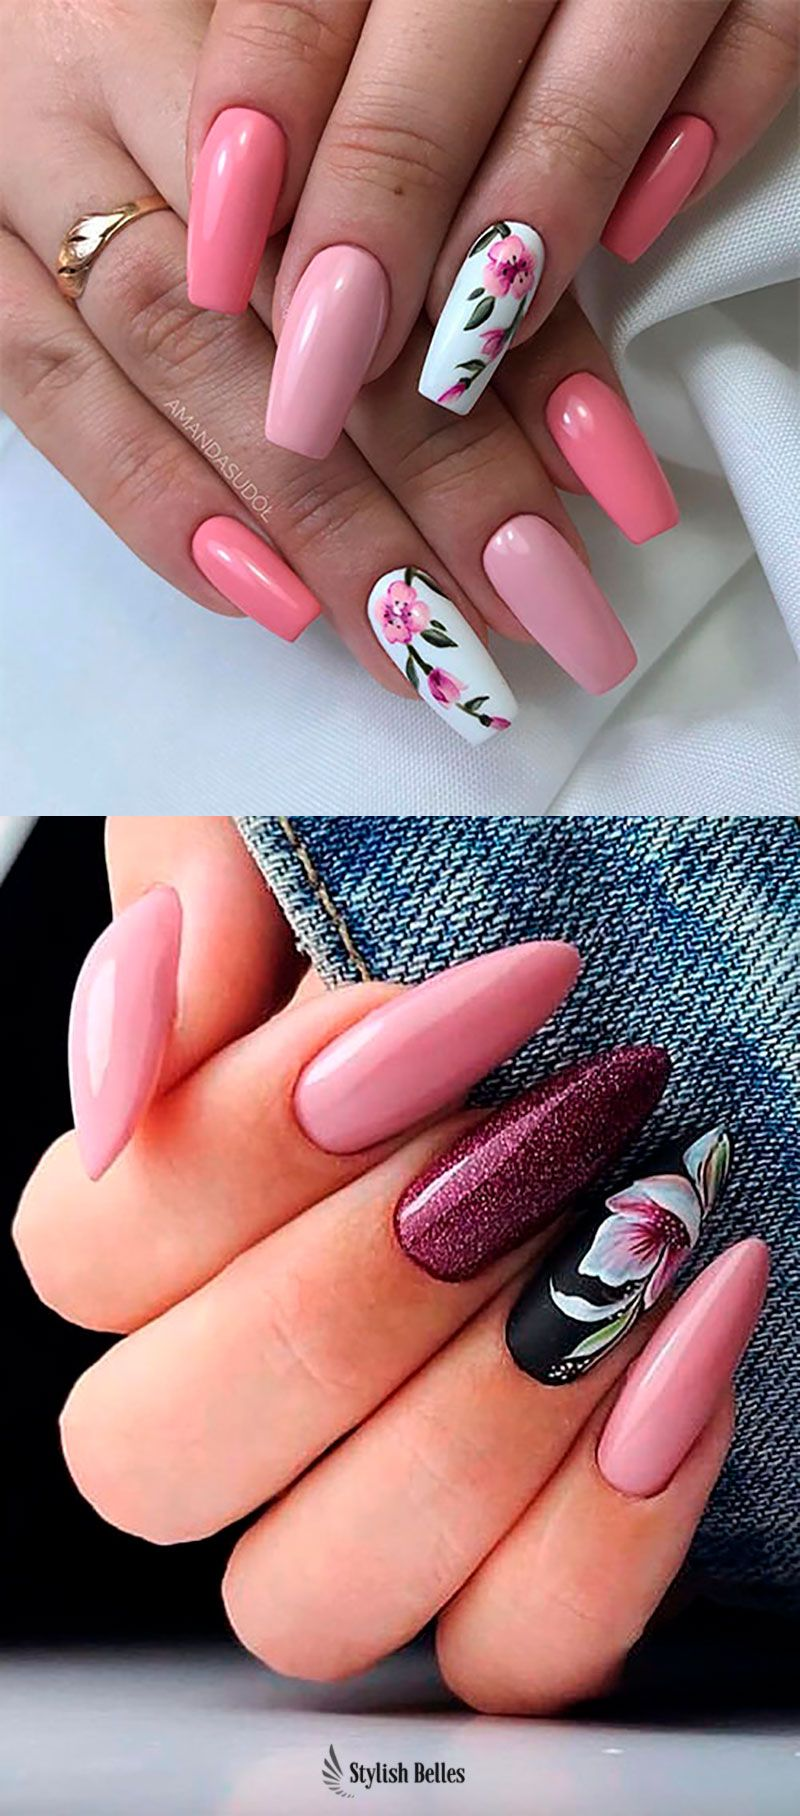 Best Nails Ideas For Spring 2019 In 2020 Gelove Nehty Design Nehtu Nehet